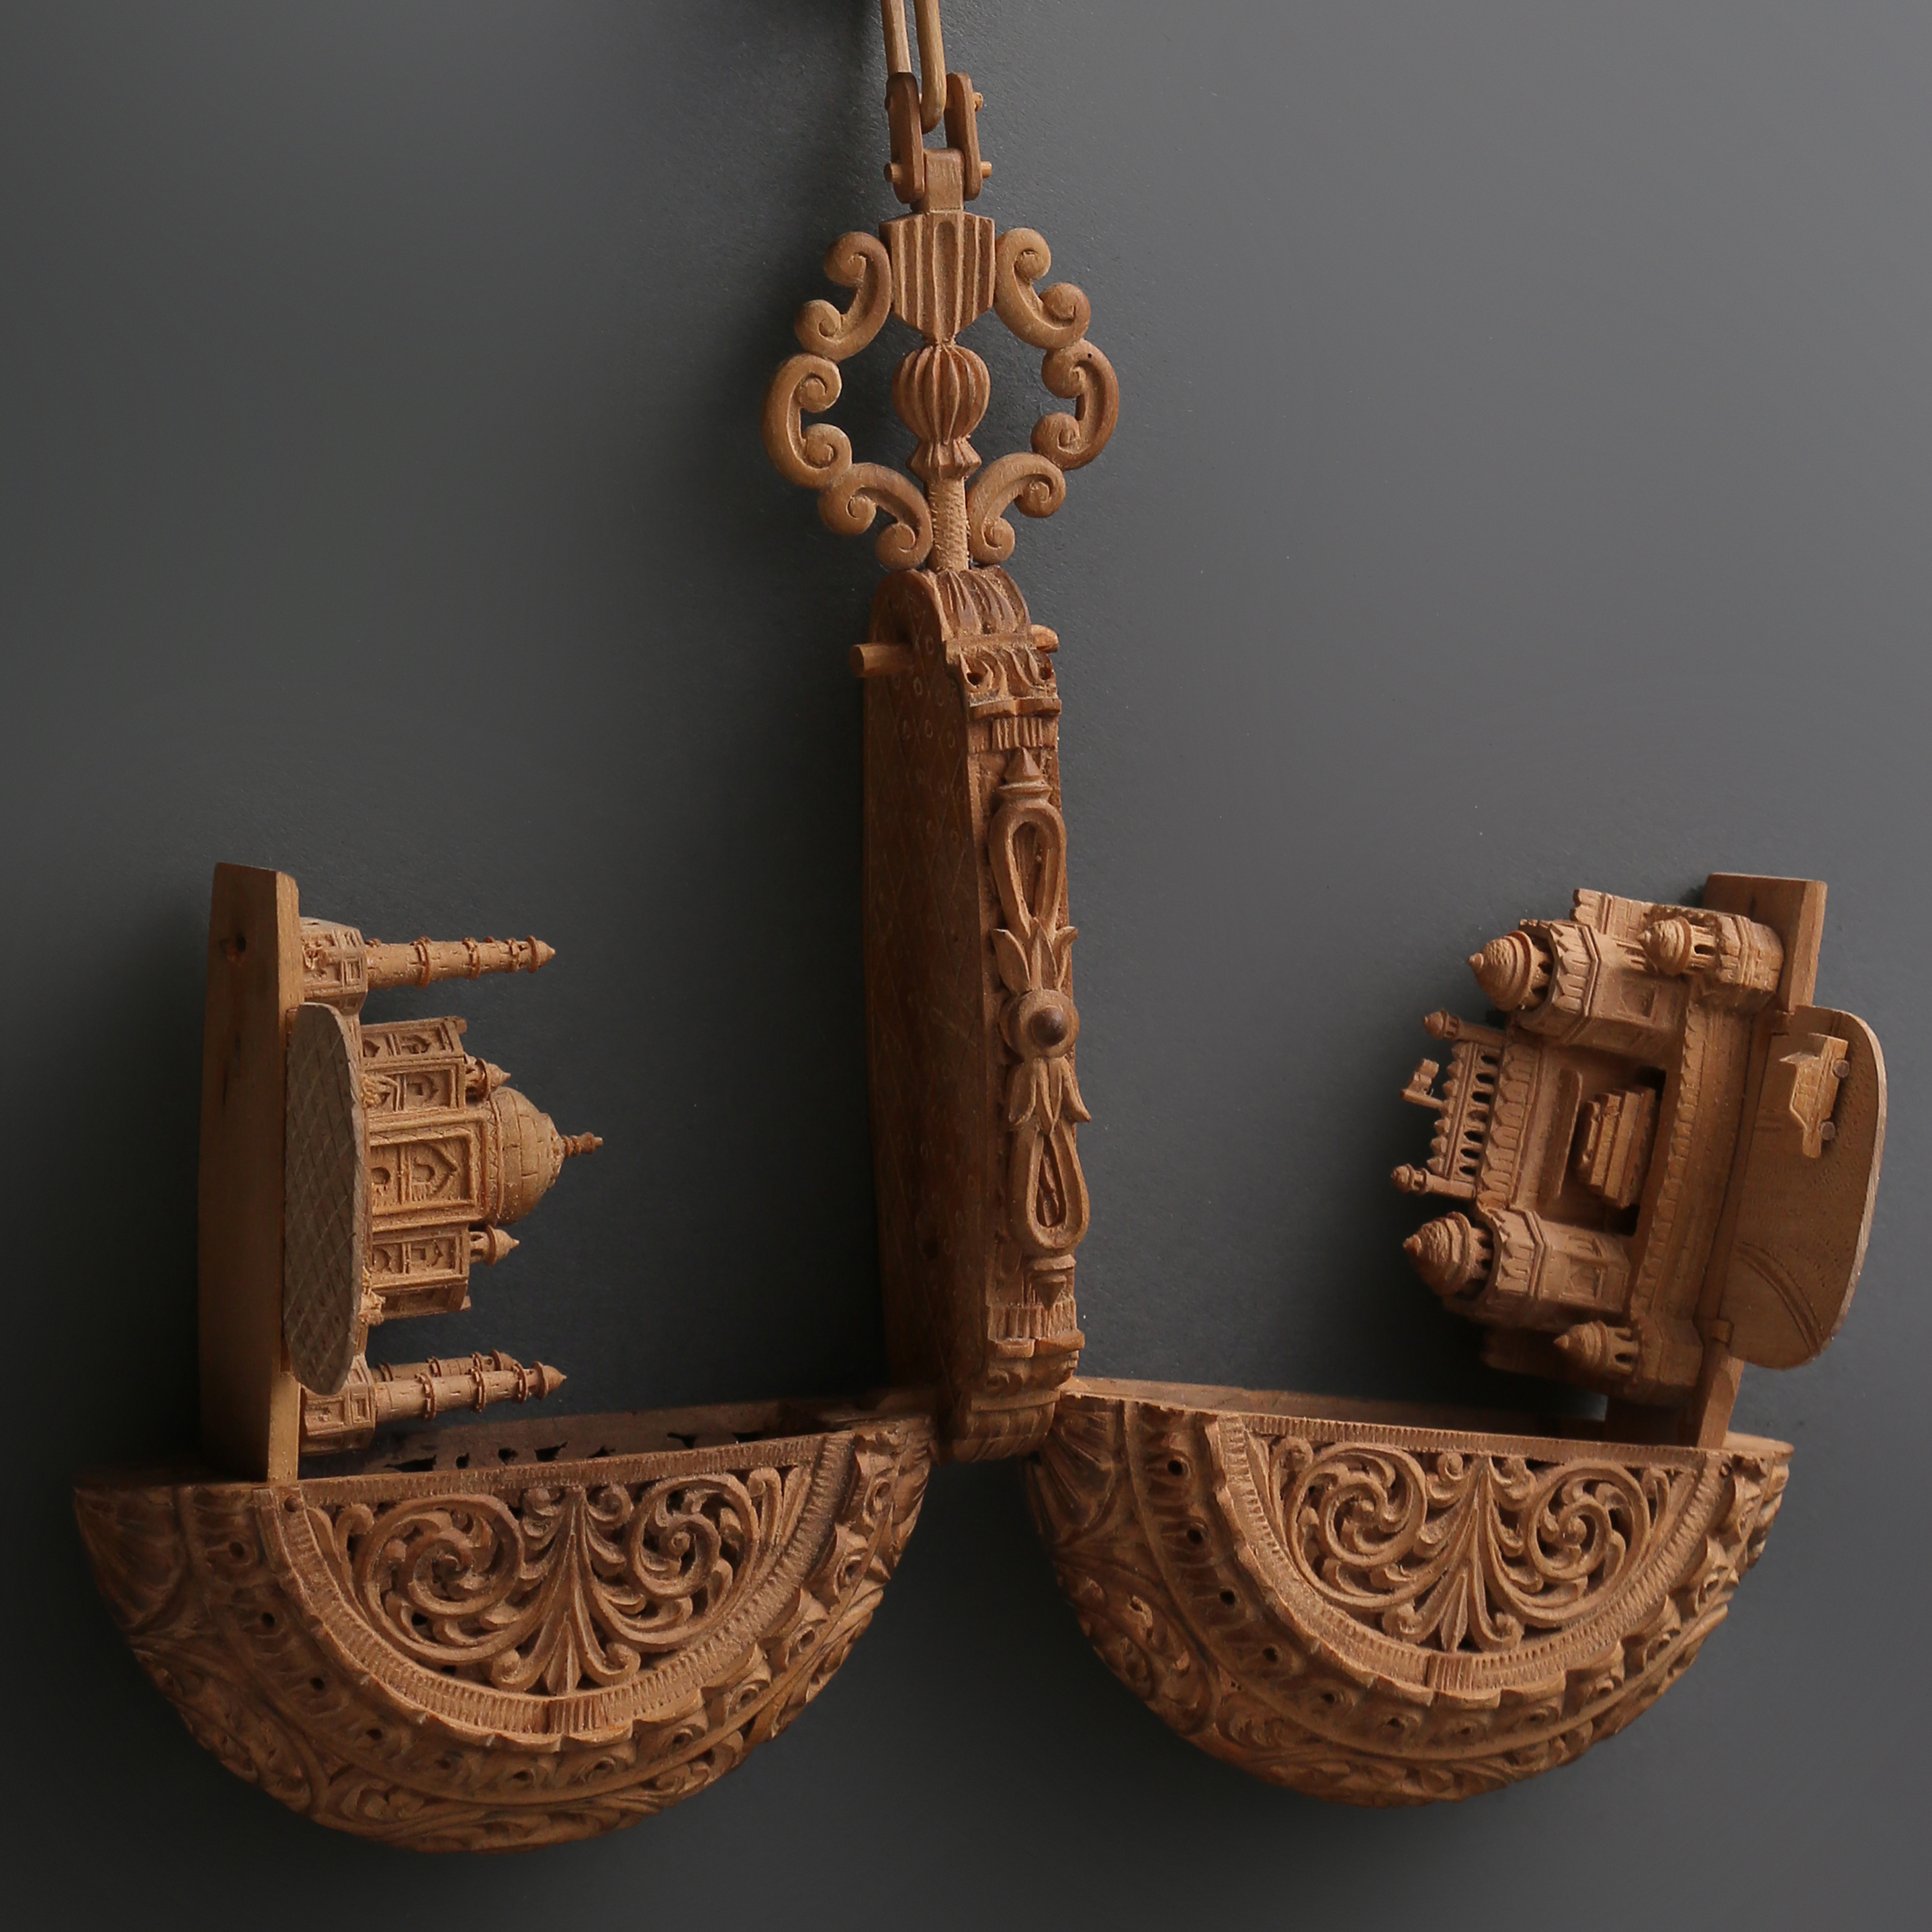 Sandalwood Carving from Rajasthan